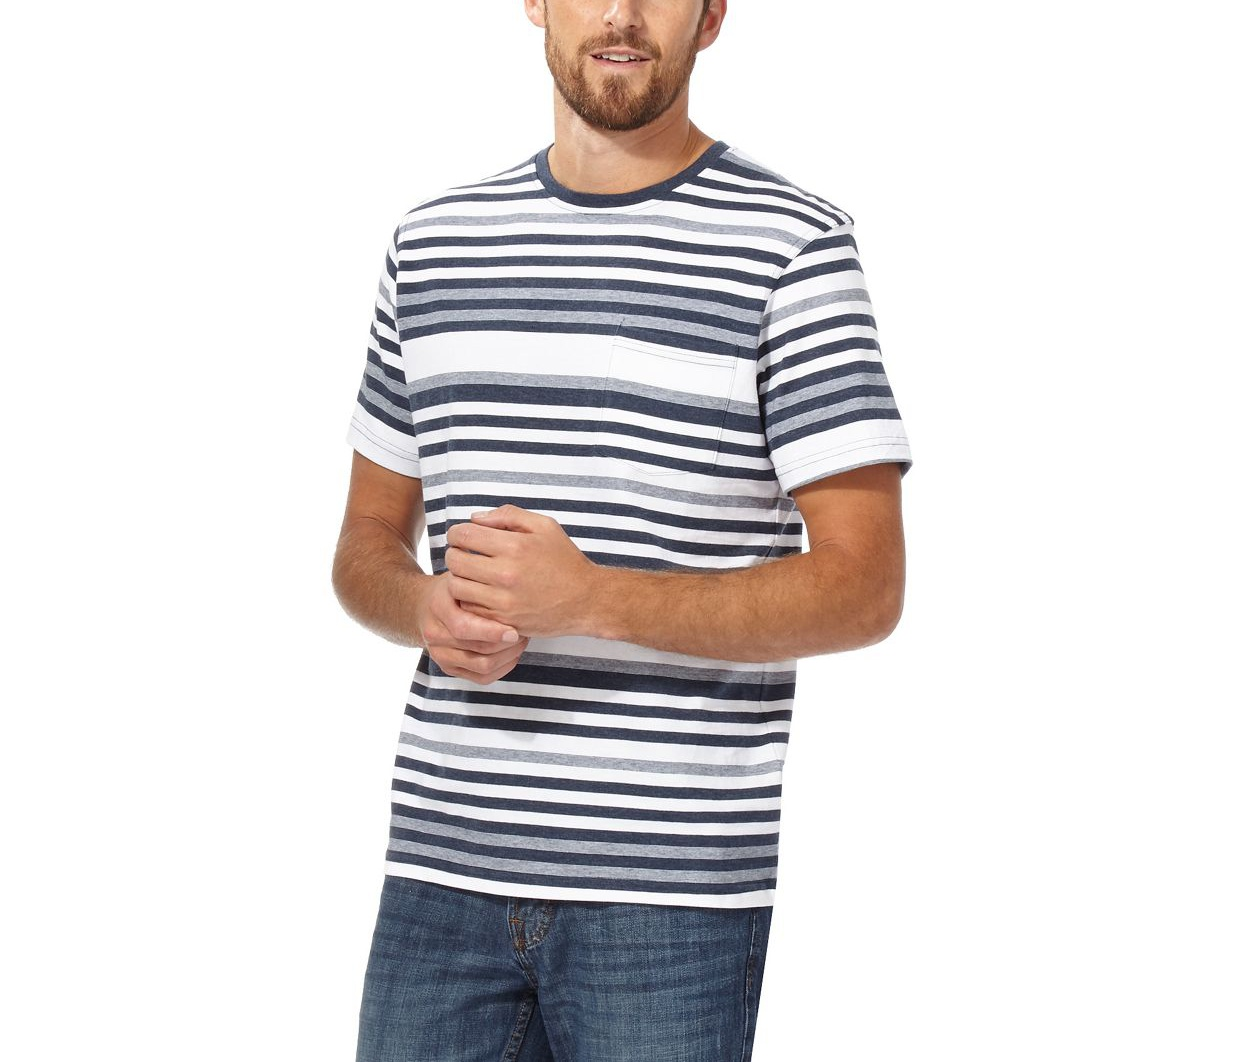 Maine New England White Navy and white striped t-shirt